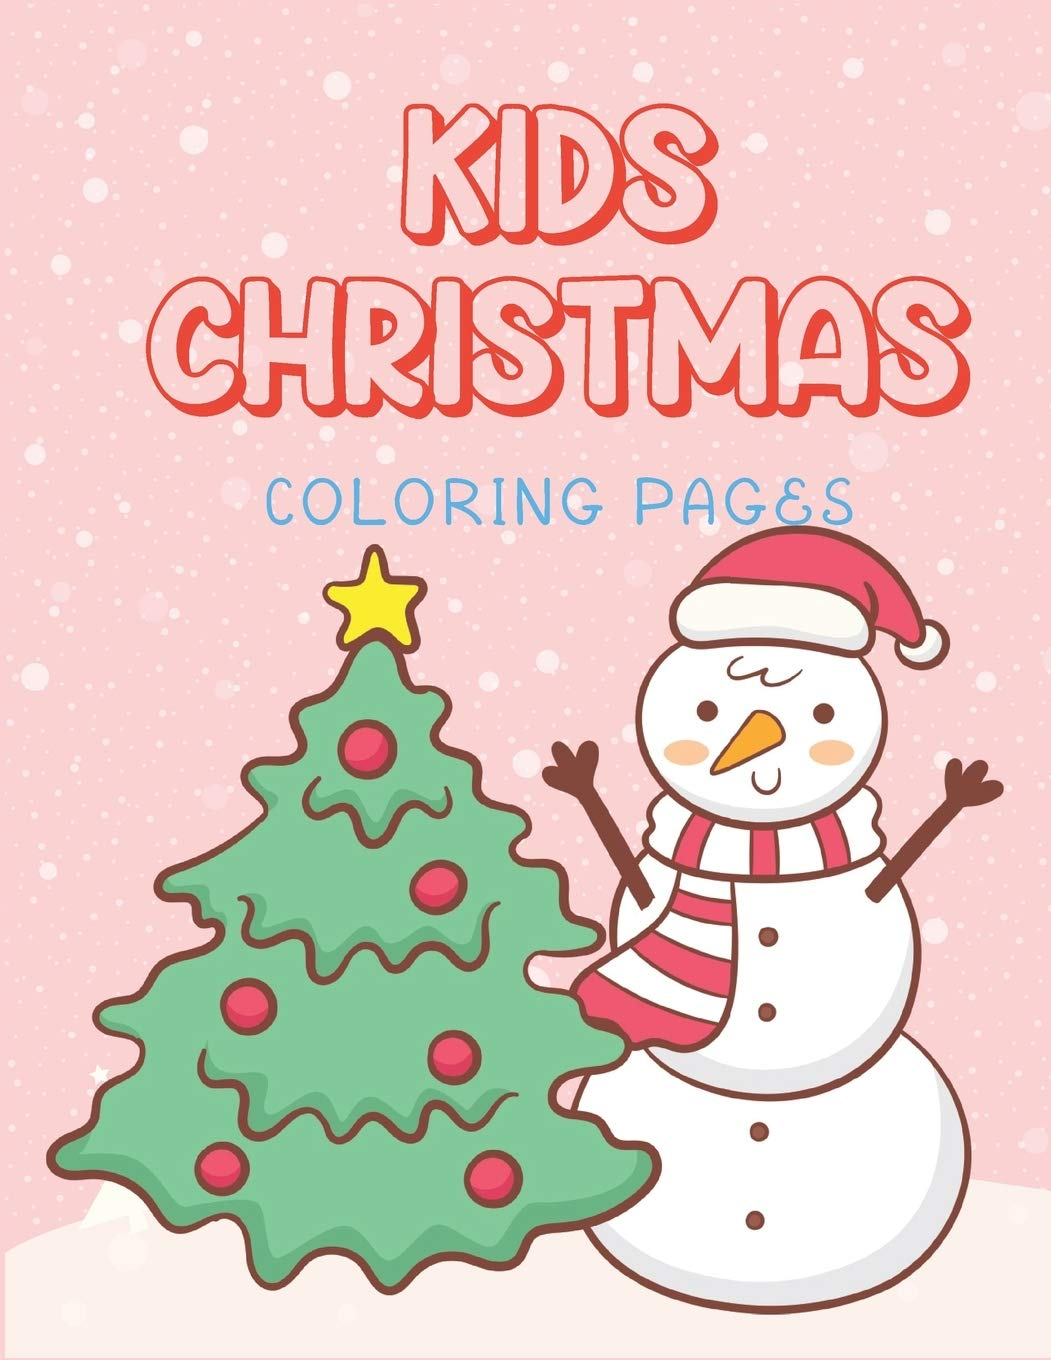 Kids Christmas Coloring Pages Children Xmas Travel Cute Coloring Picture Book Winter Theme 1 Christmas Coloring Book For Kids Amazon Co Uk Woods Ralp T Books